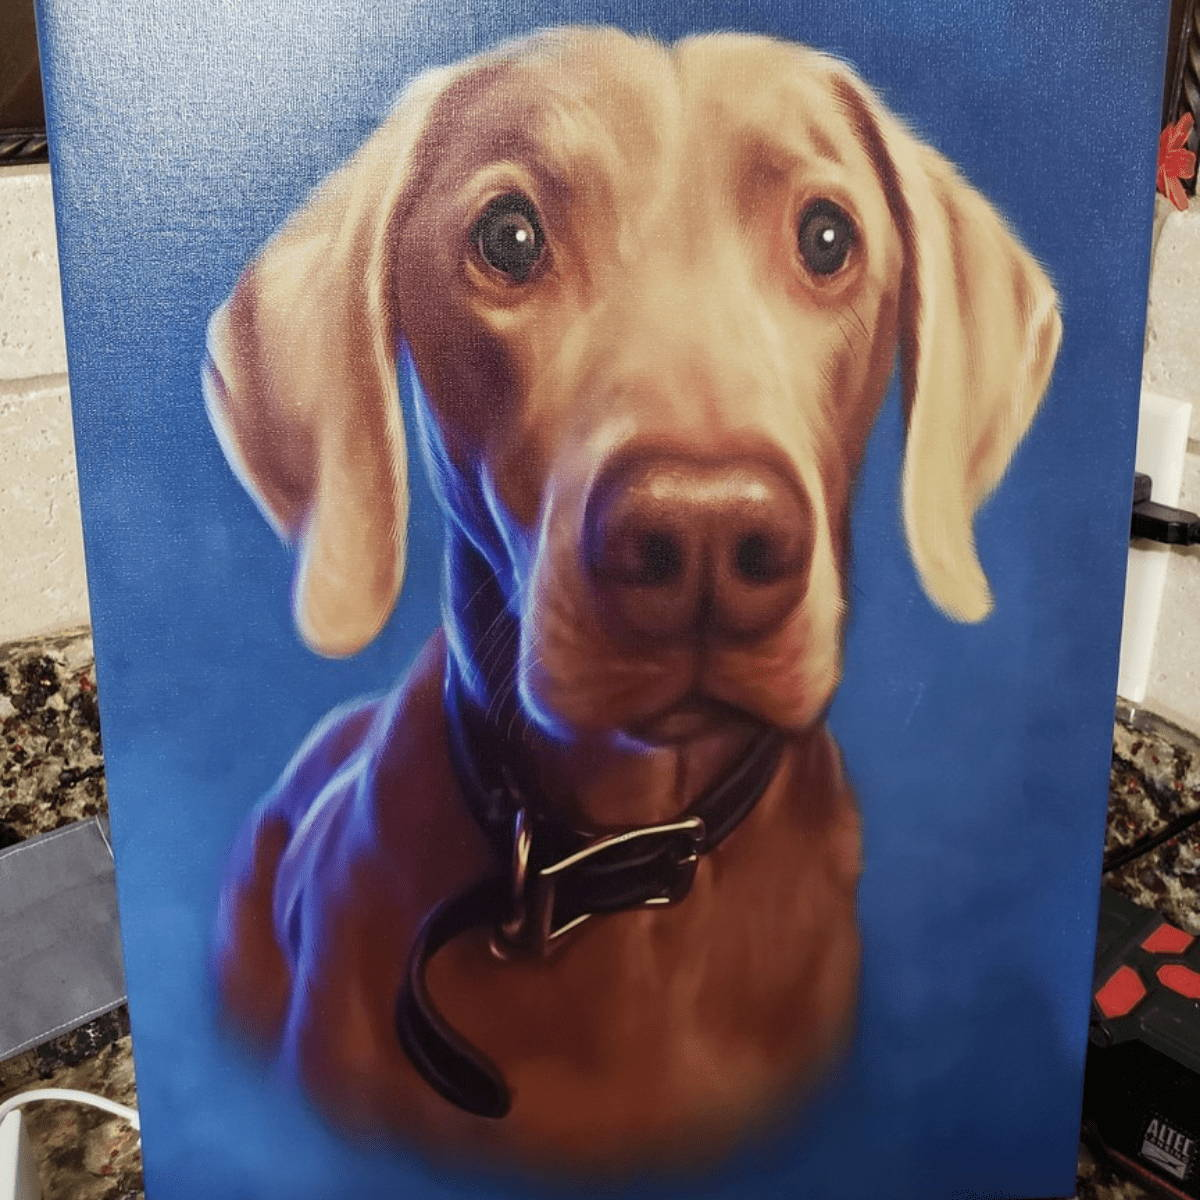 Hand painted picture of dog on blue background